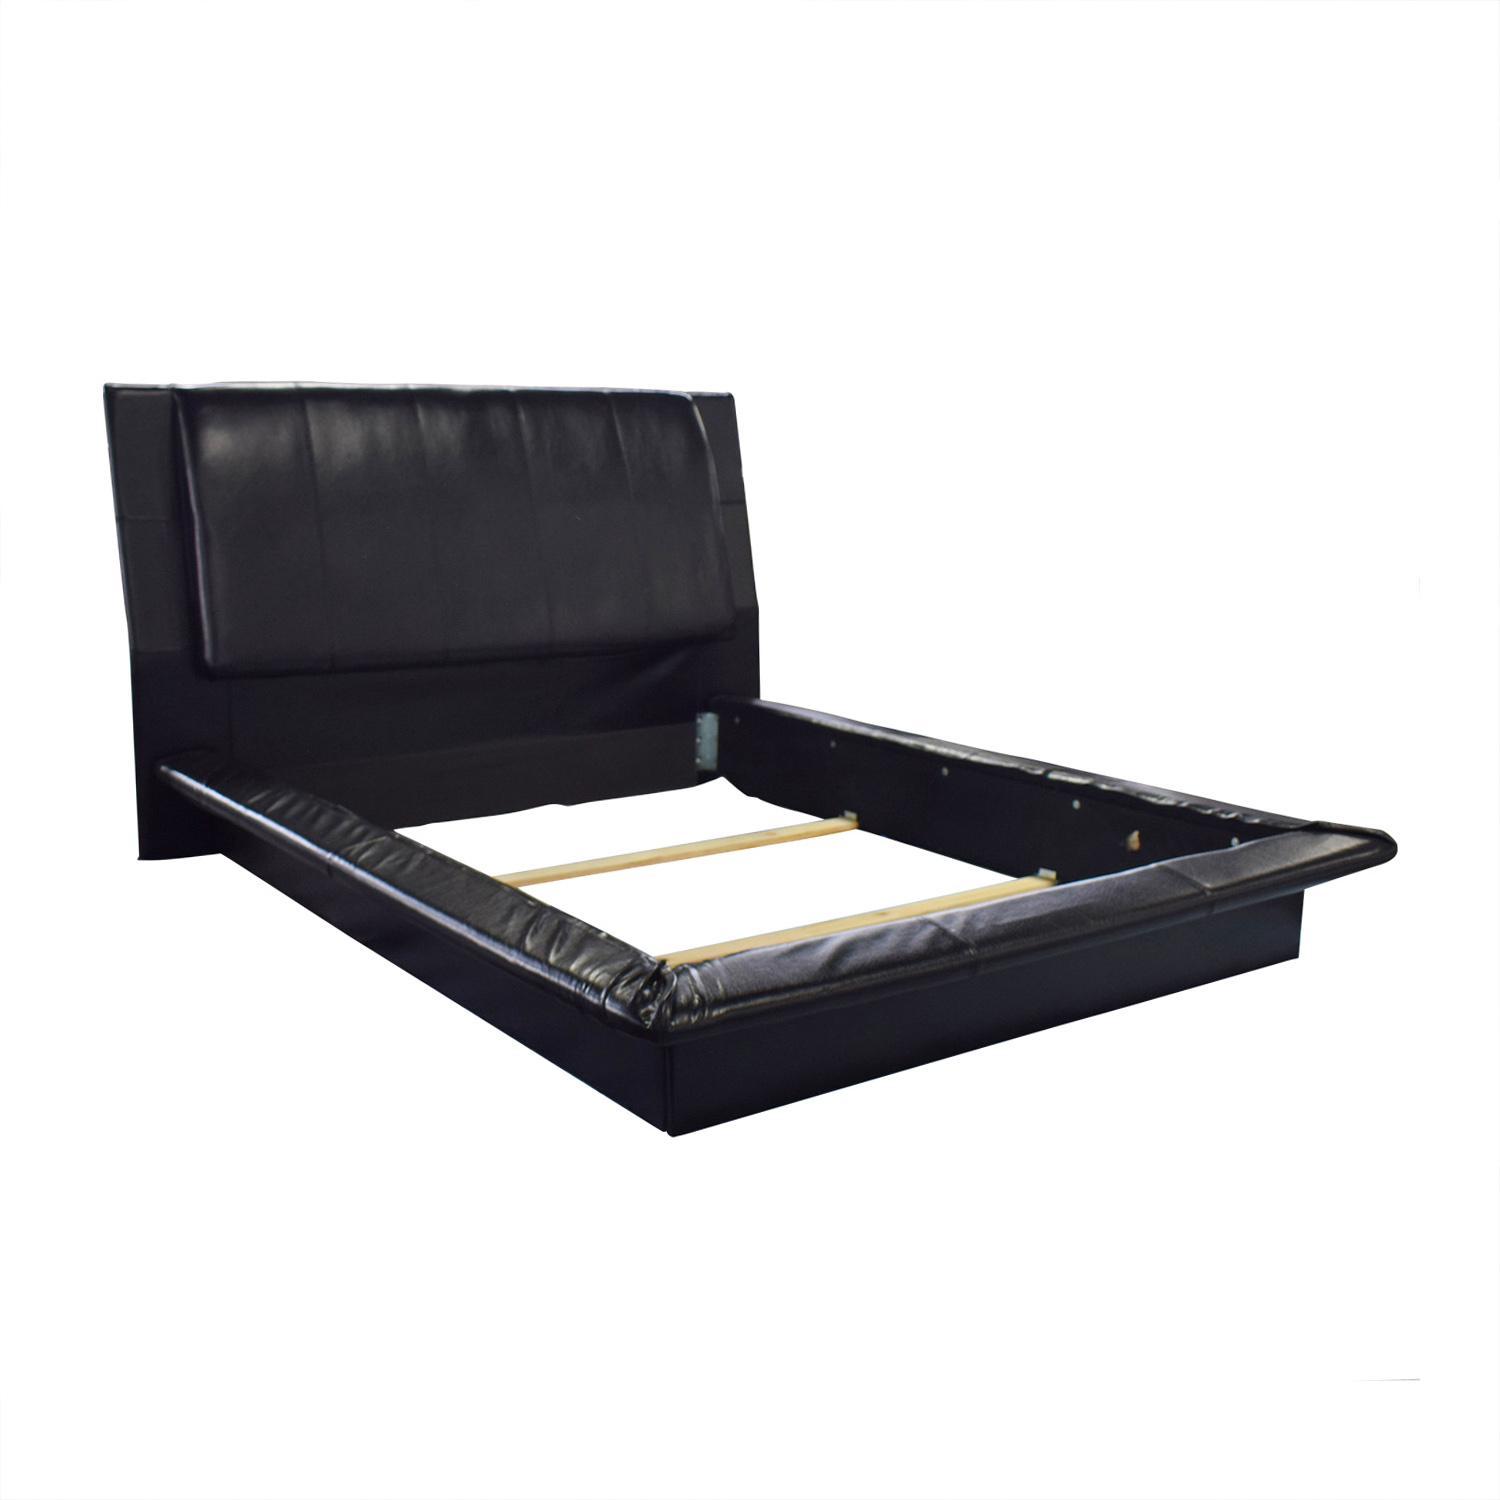 52% OFF - Black Leather Queen Bed Frame / Beds